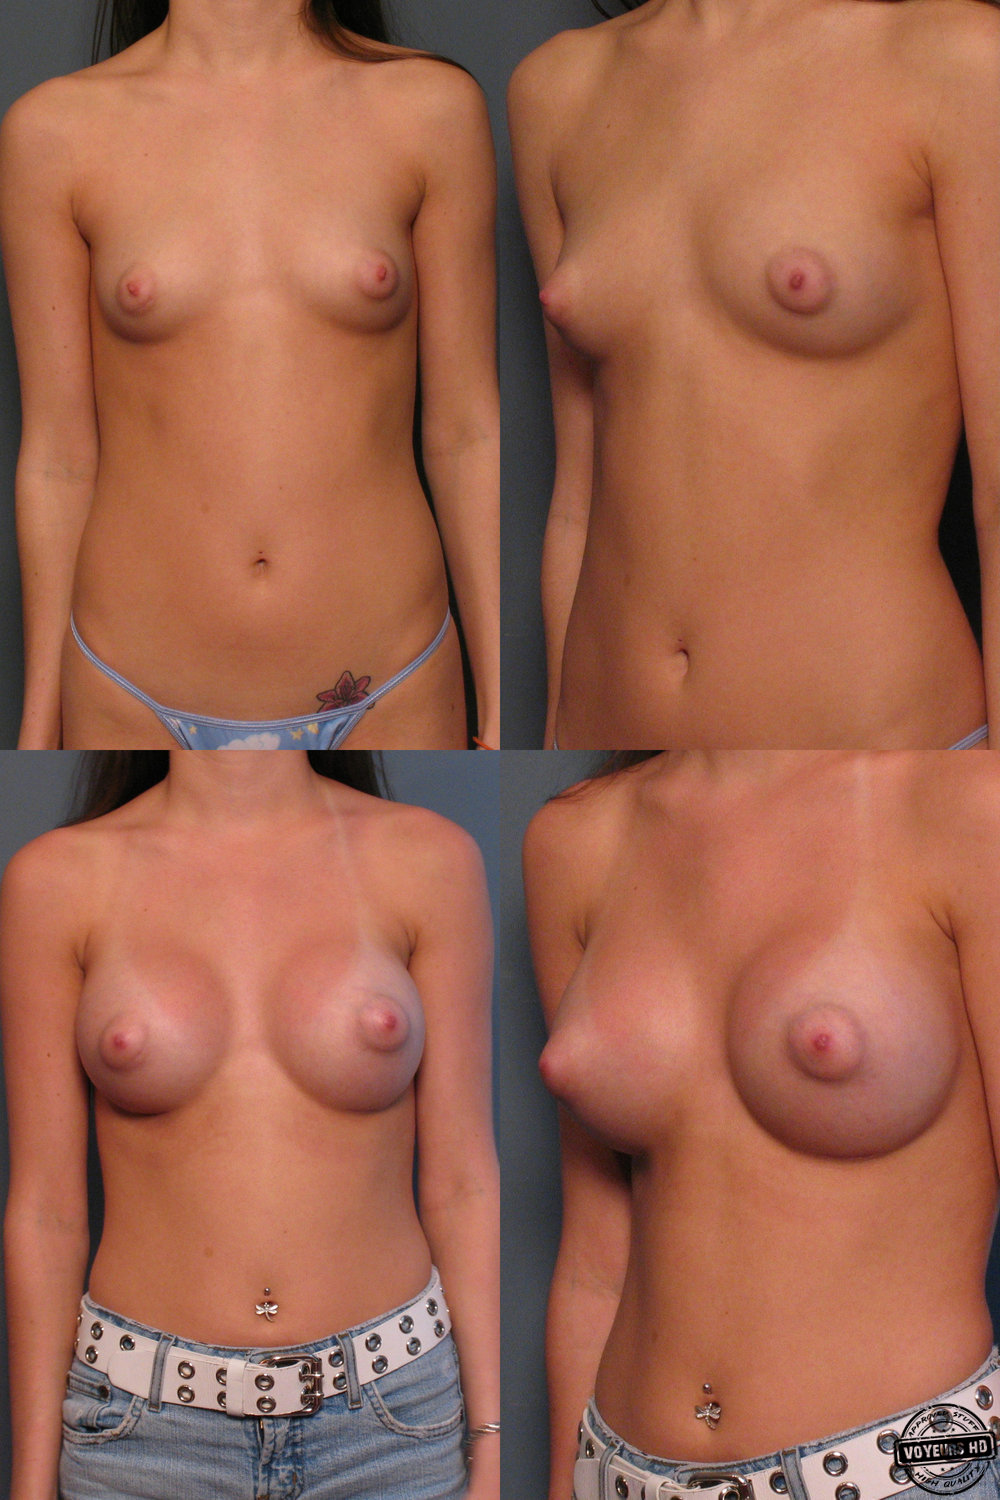 ca breast